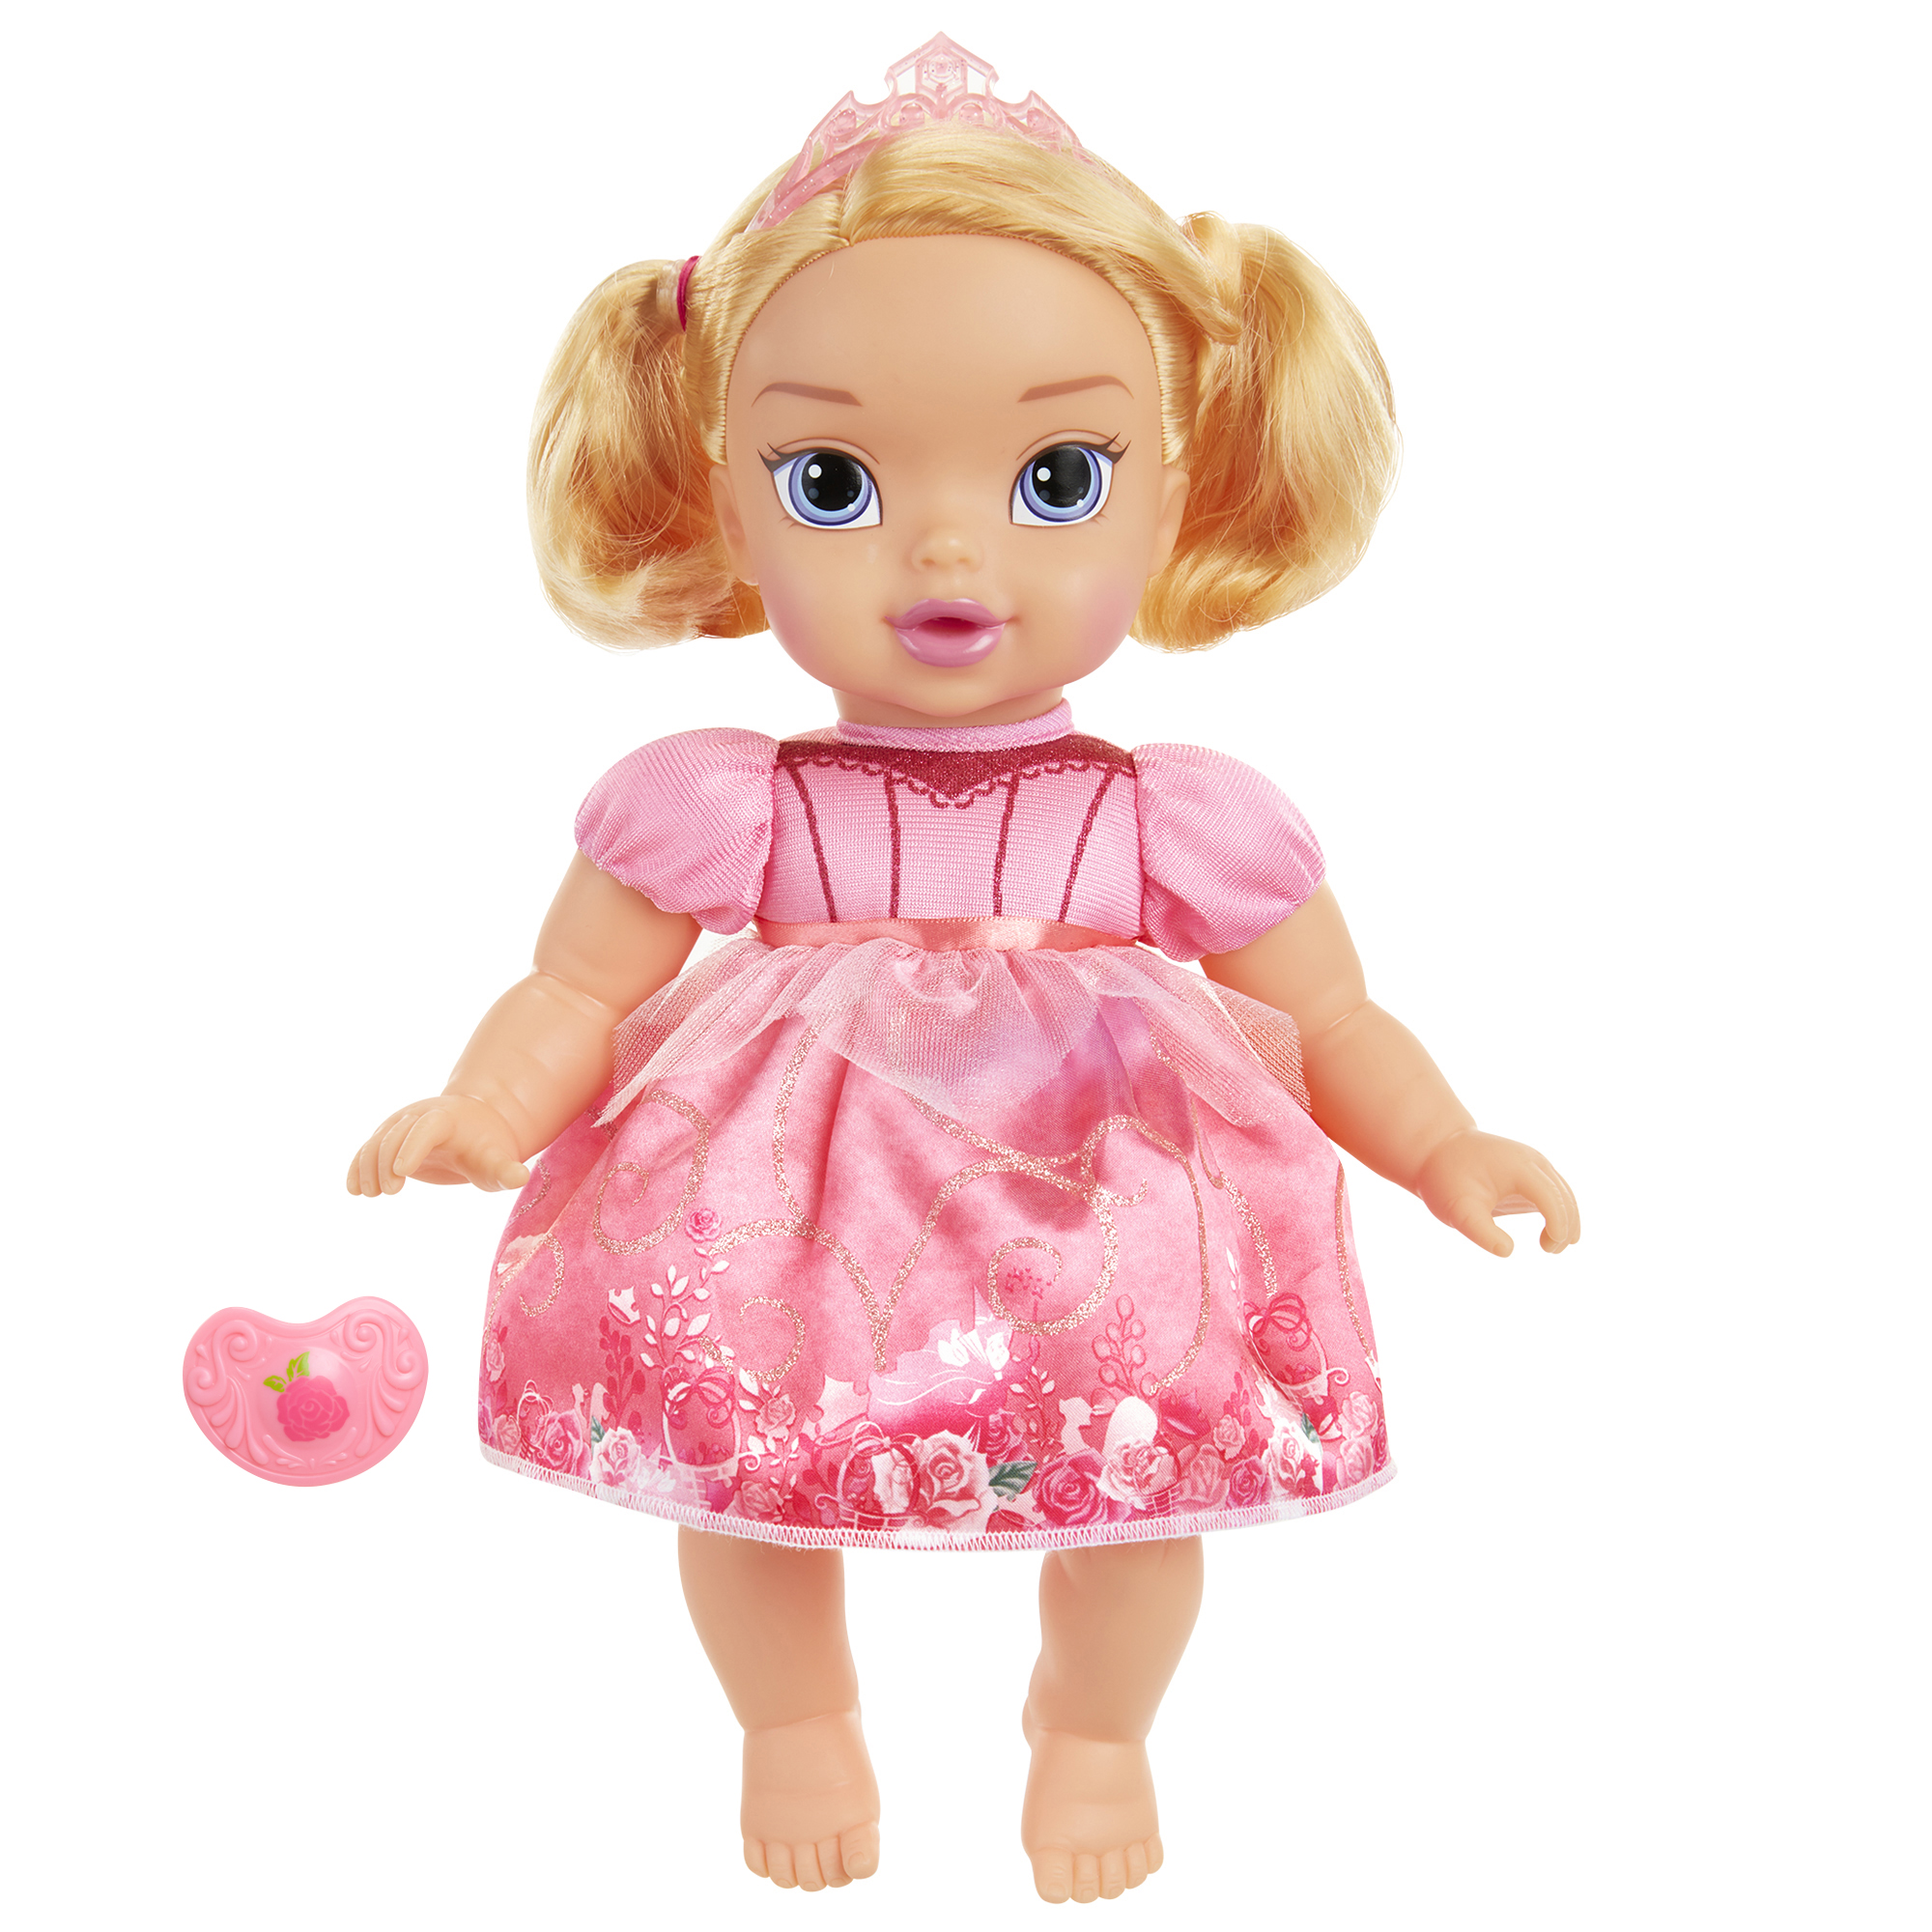 Aurora Deluxe Baby Doll with Pacifier Disney Princess